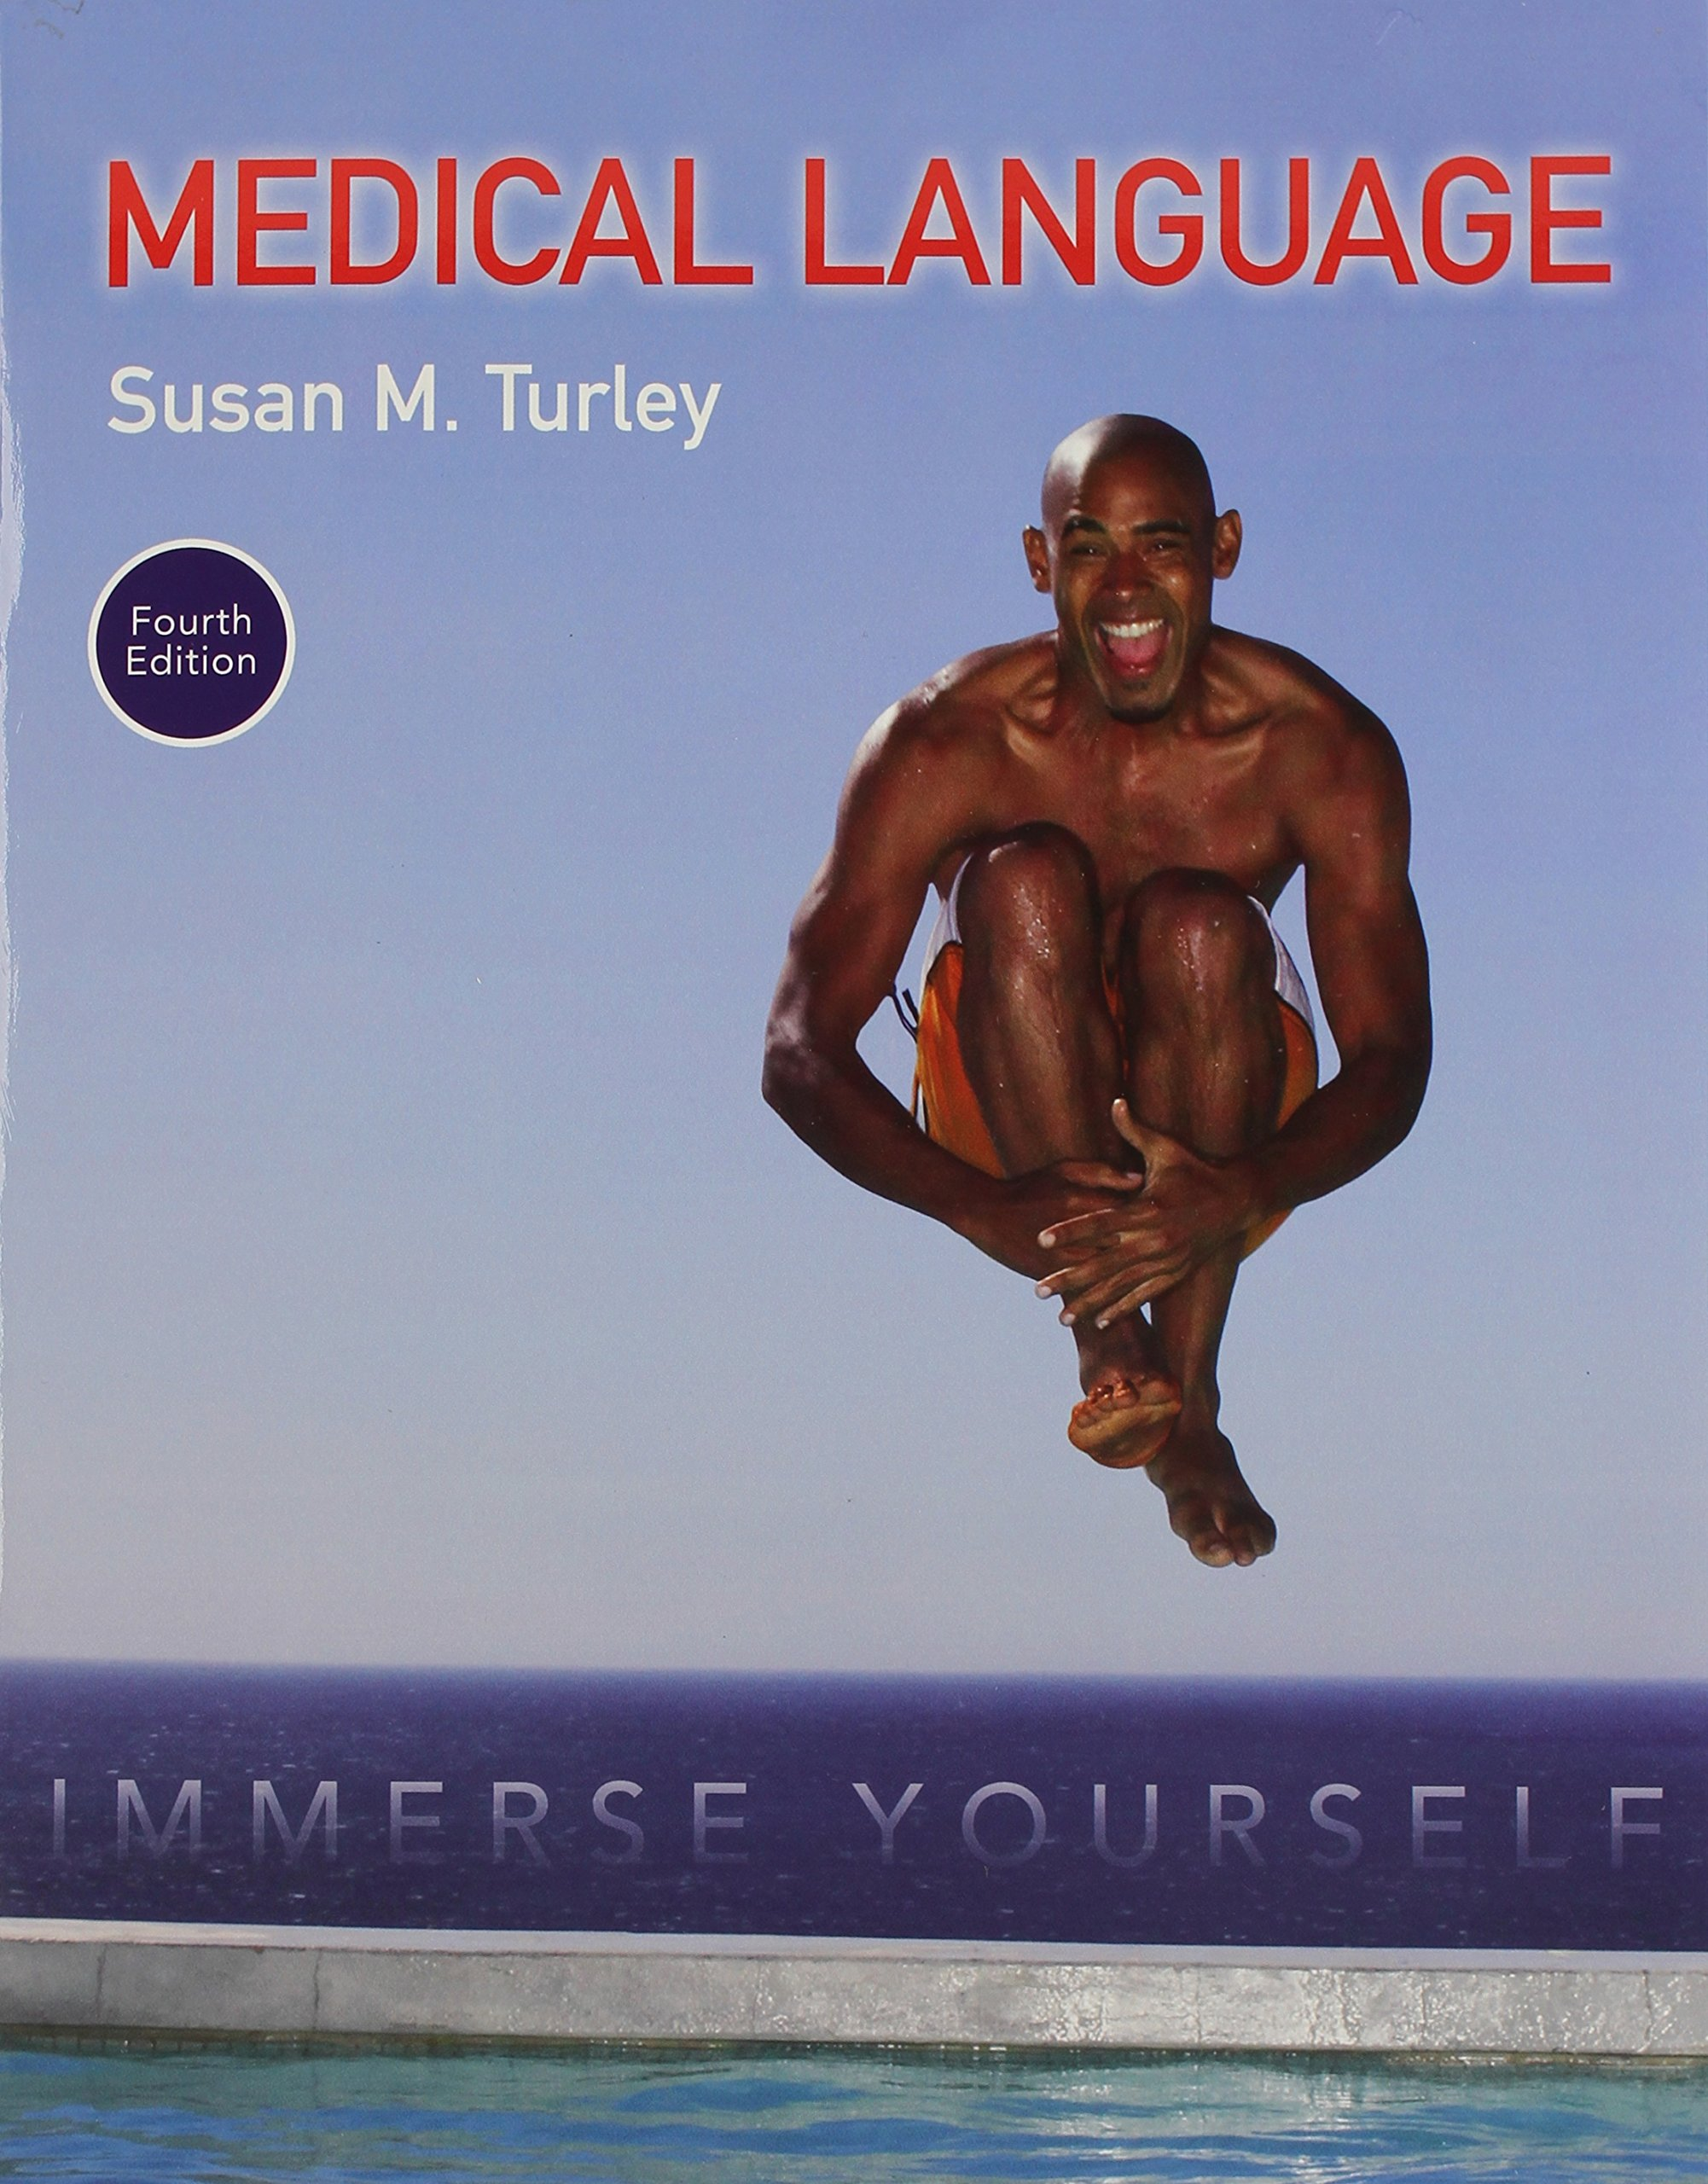 Medical Language: Immerse Yourself PLUS MyLab Medical Terminology with Pearson eText -- Access Card Package (4th Edition) by Pearson